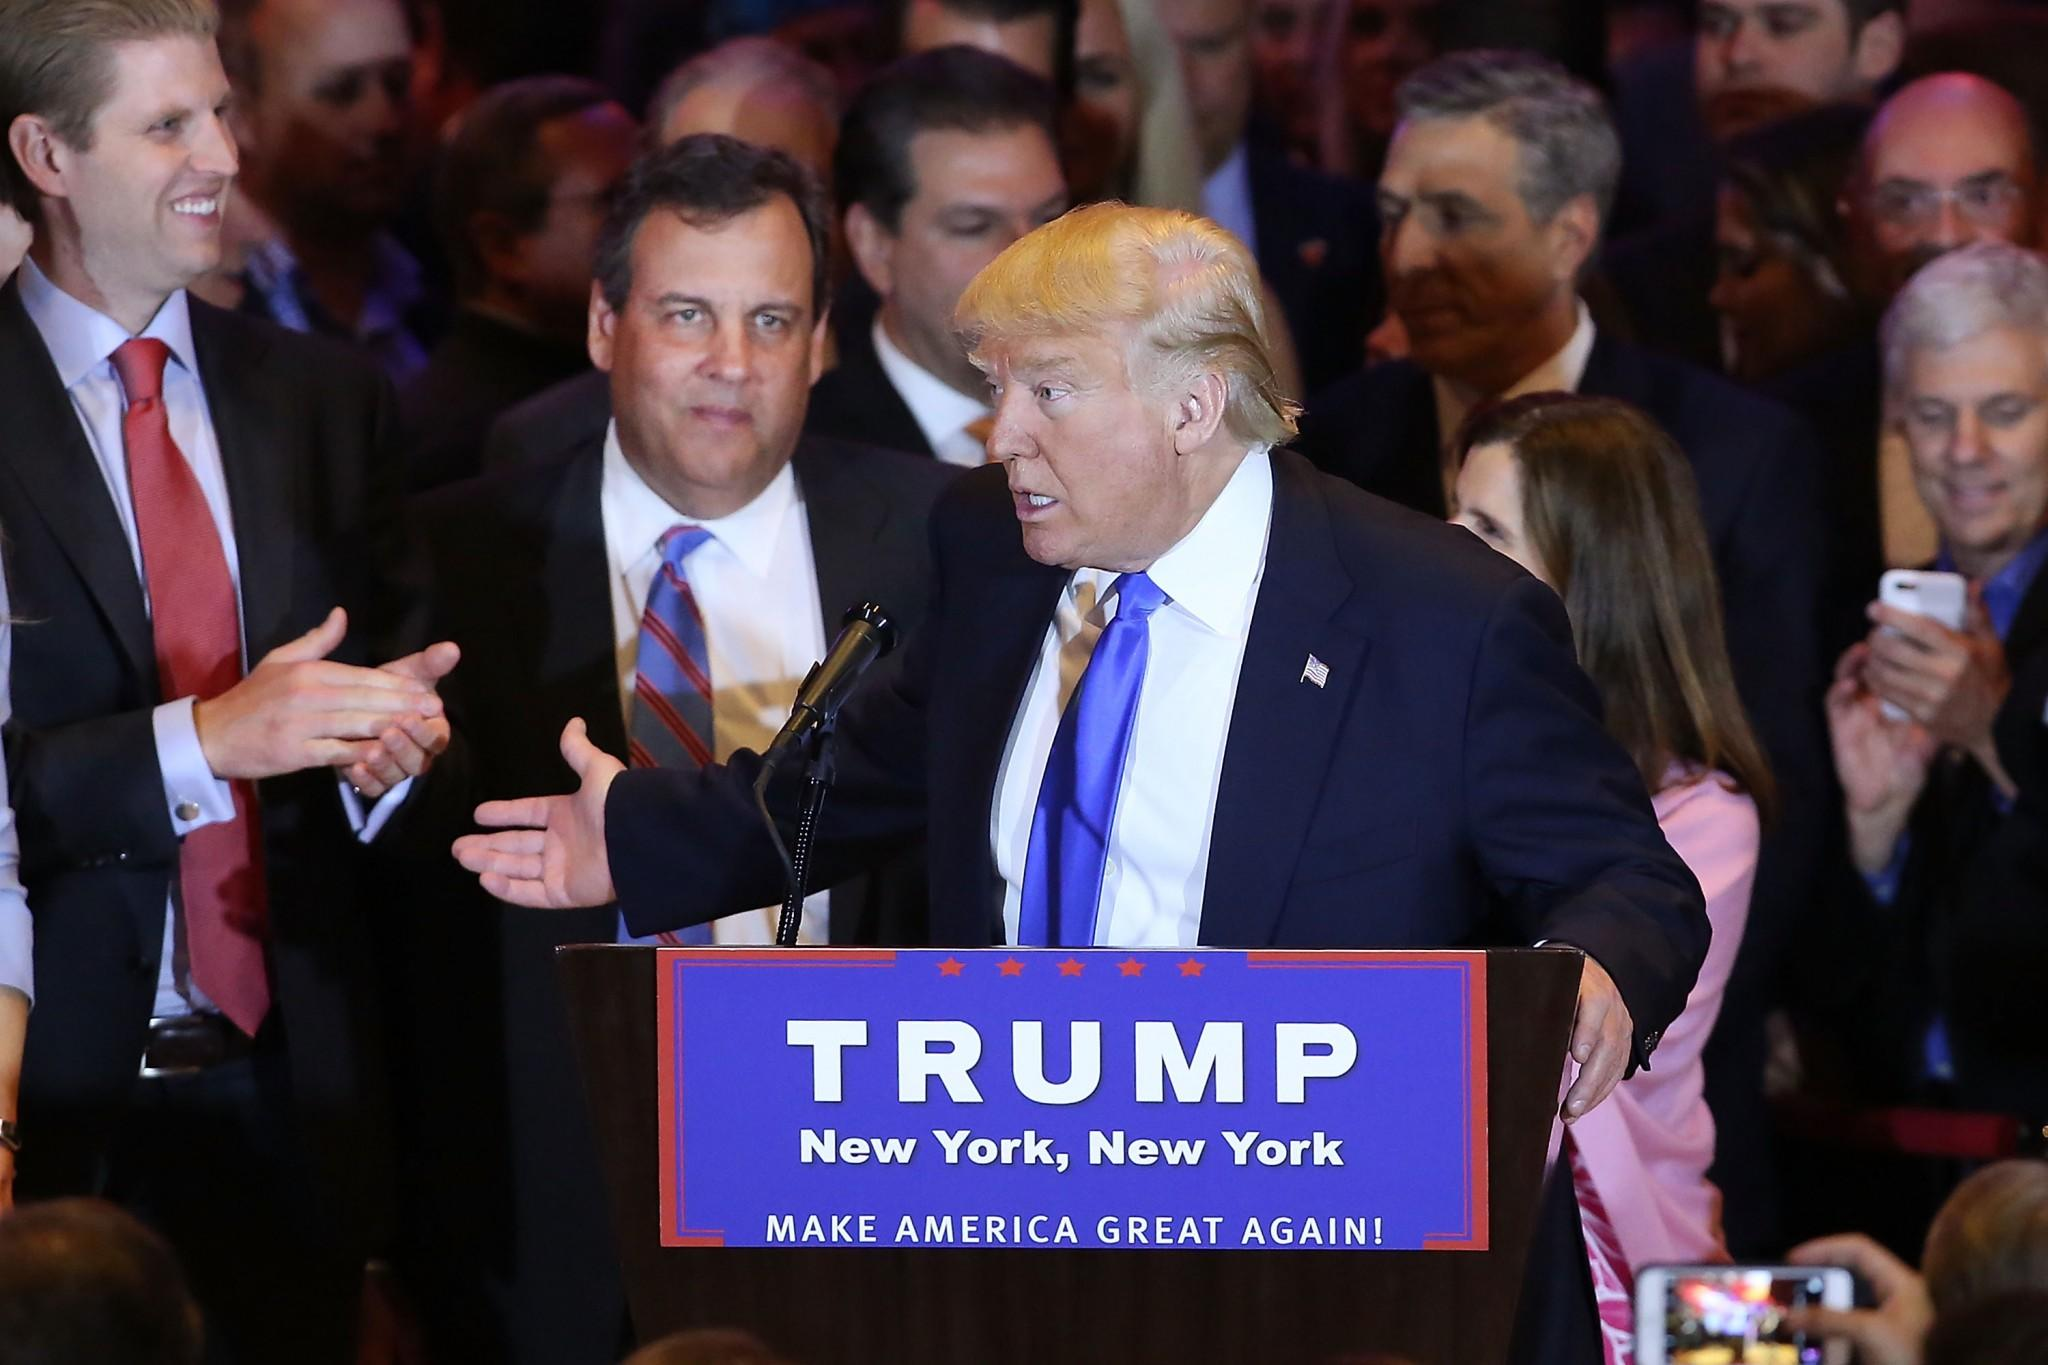 Donald Trump speaks to supporters and the media with New Jersey Gov. Chris Christie behind him at Trump Tower in April 2016. (Photo: Spencer Platt/Getty Images)